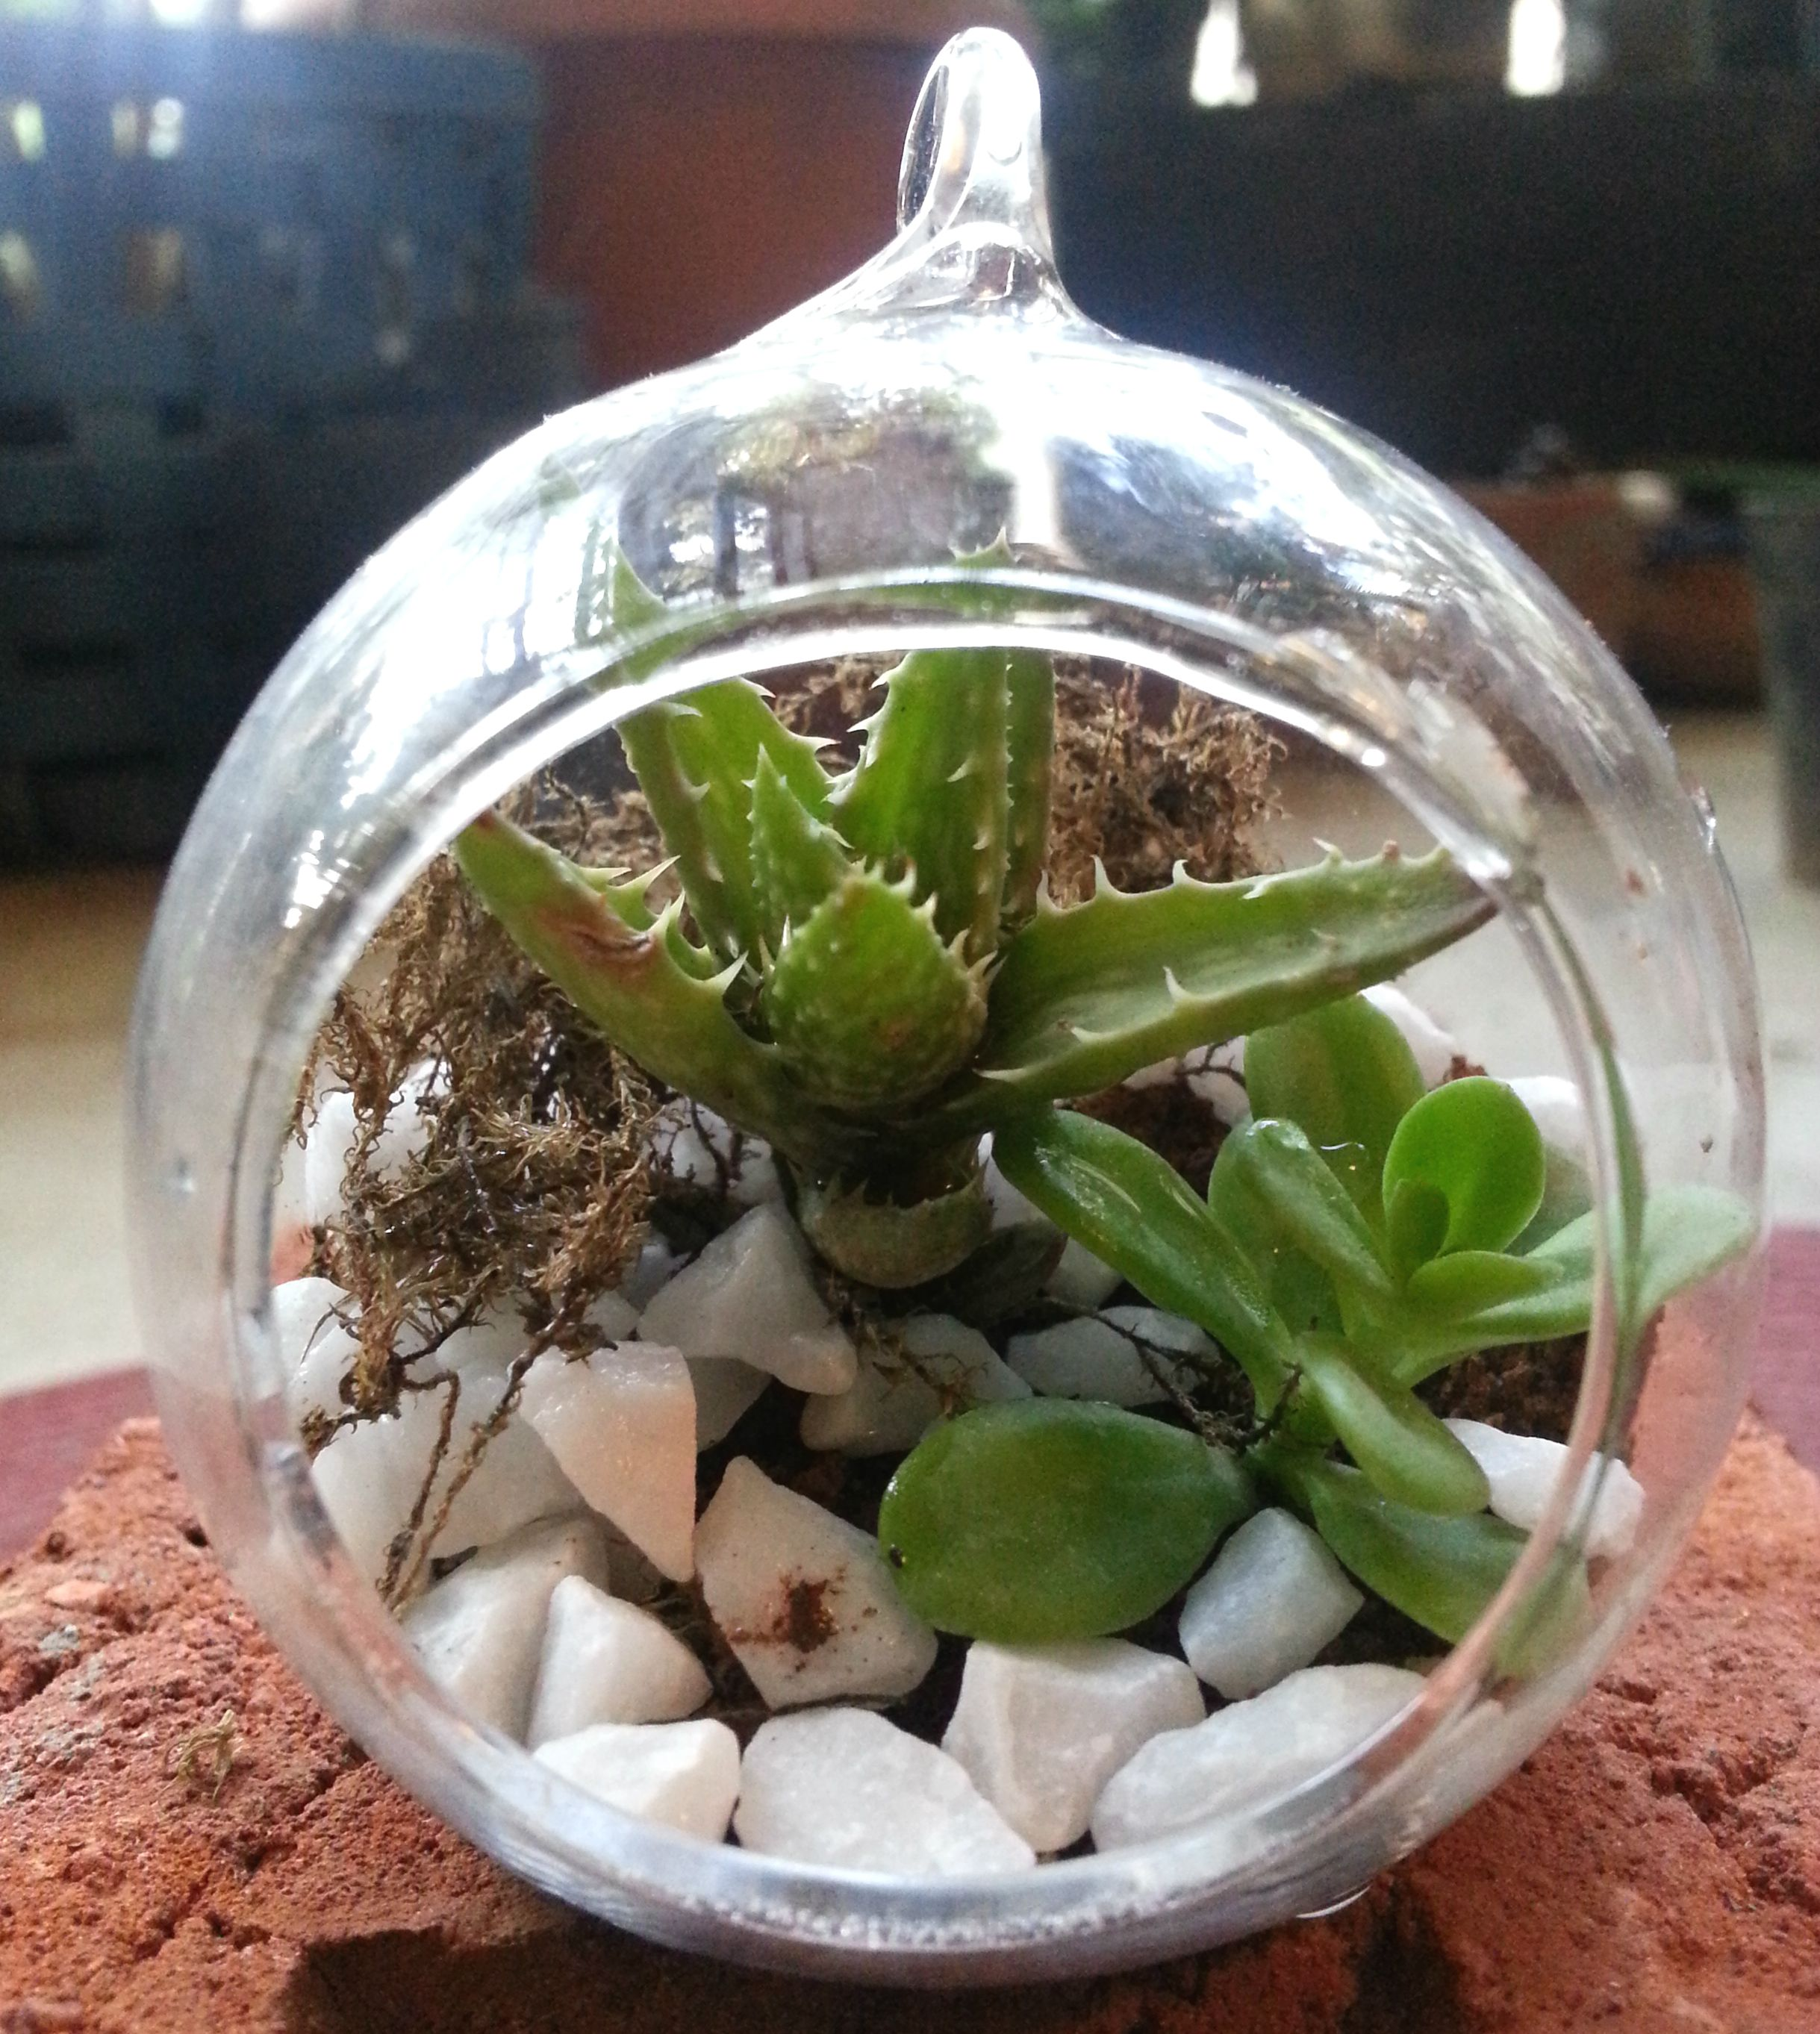 Mini Terrarium Diy Kit Buy Online India Terrarium Terrarium